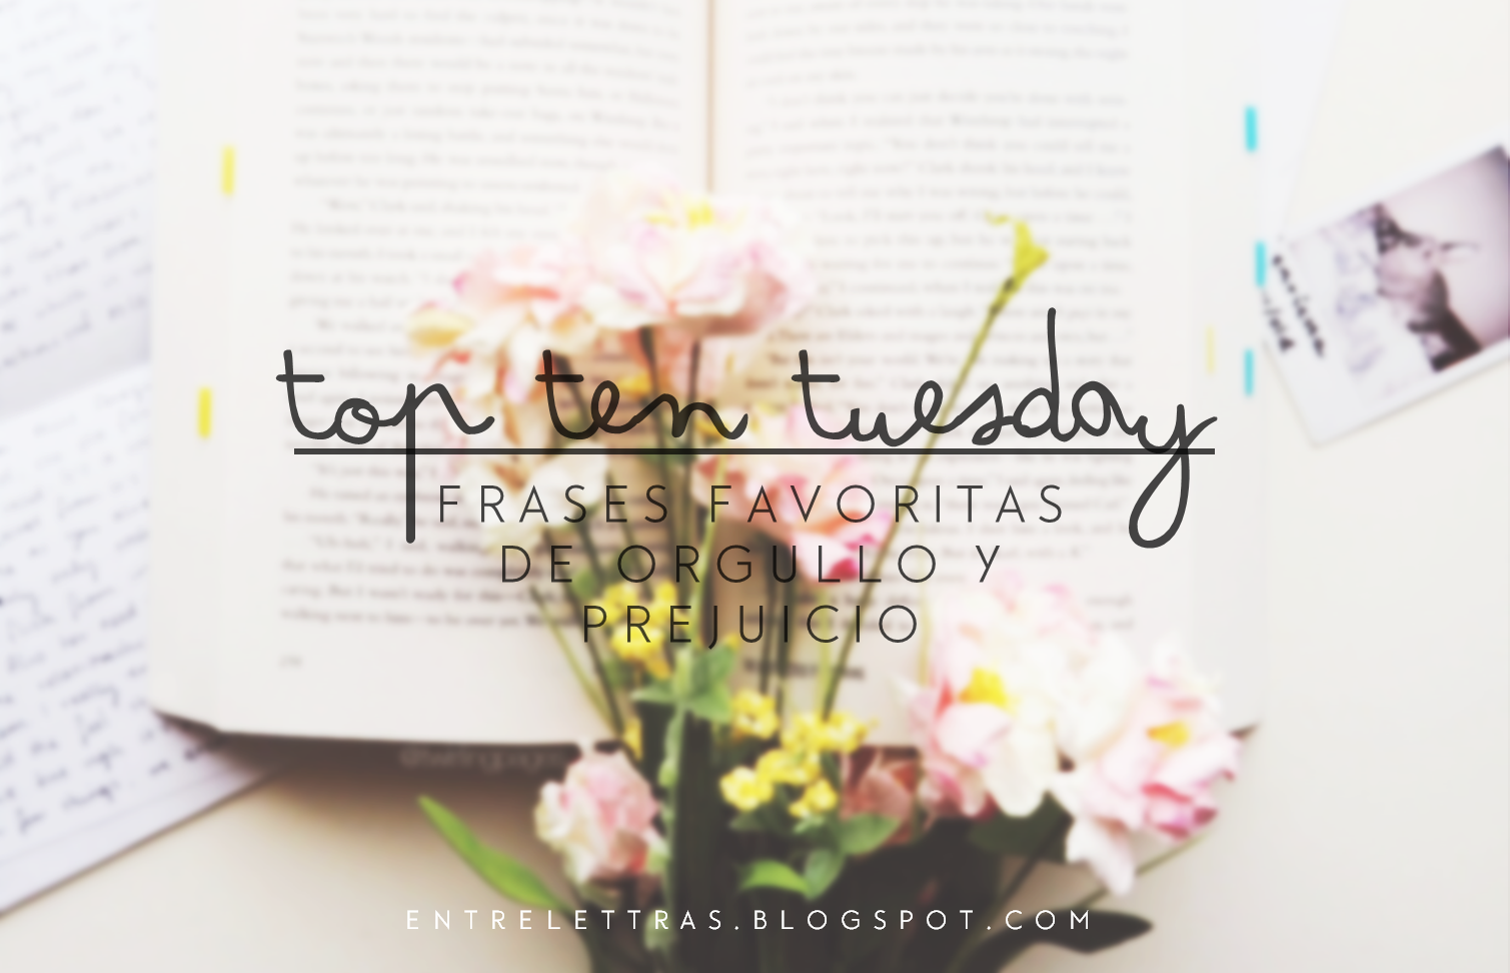 Final De Orgullo Y Prejuicio Libro Entre Letras Top Ten Tuesday Frases Favoritas De Orgullo